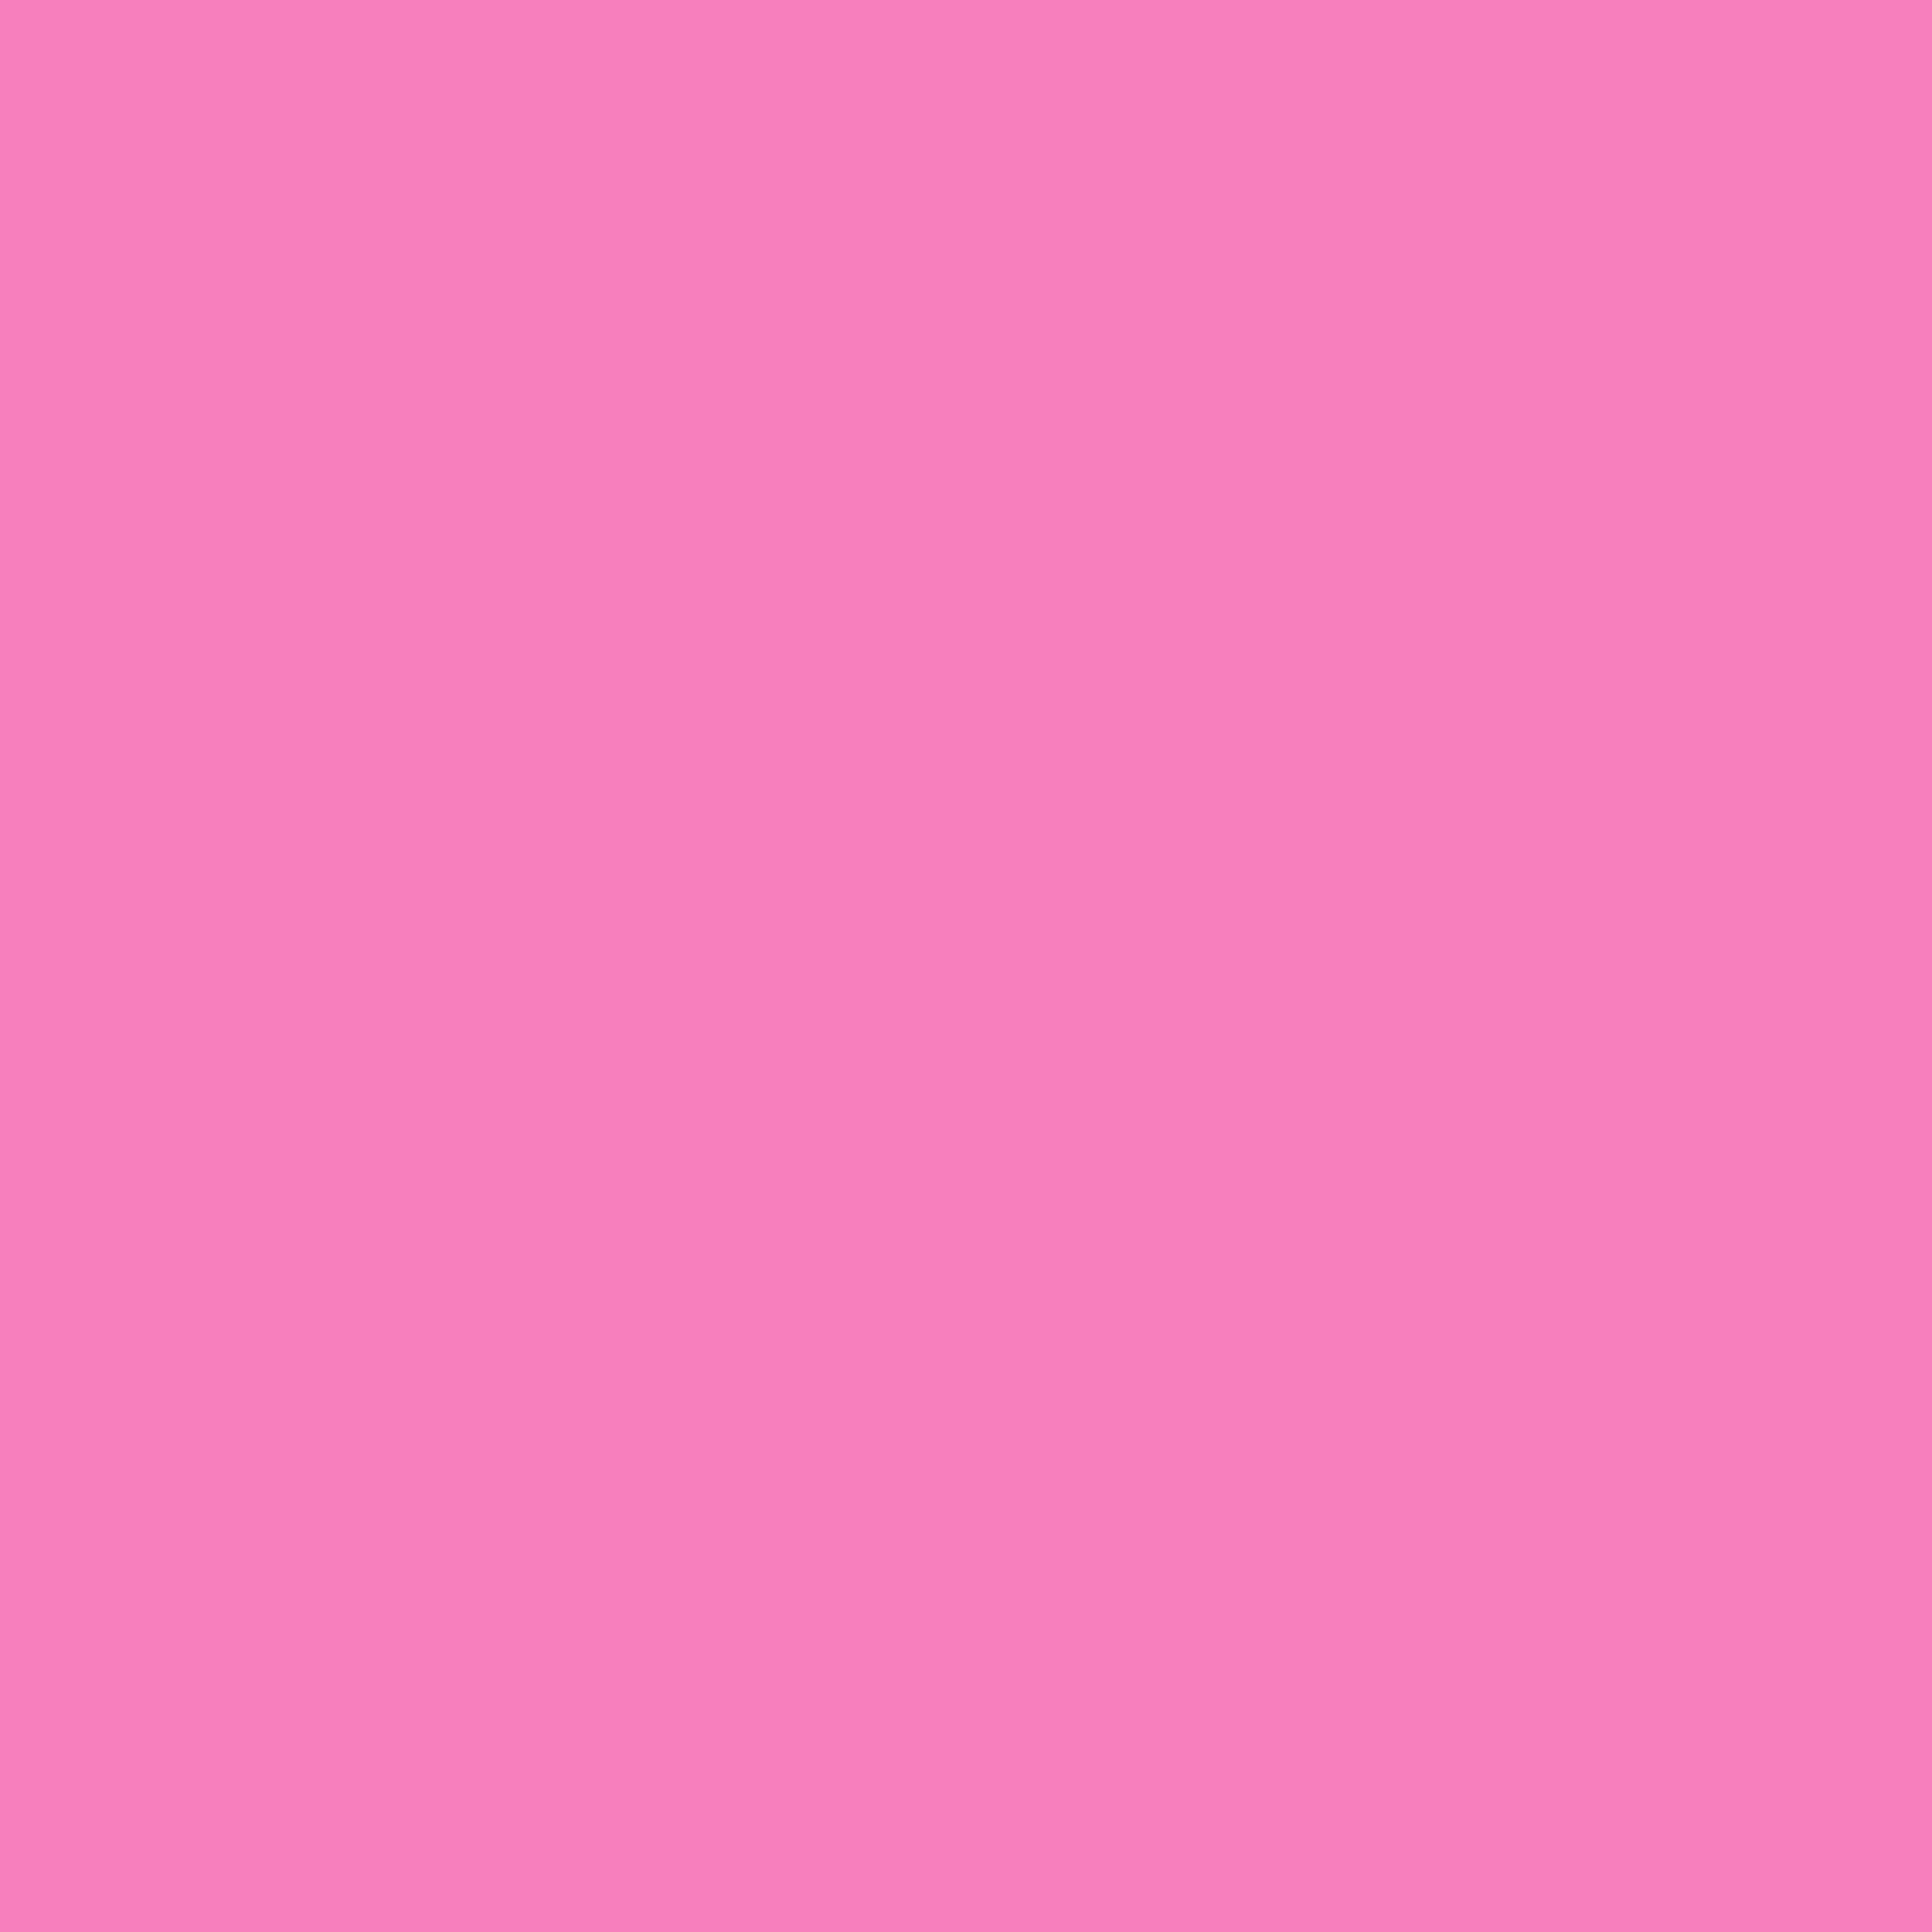 3600x3600 Persian Pink Solid Color Background